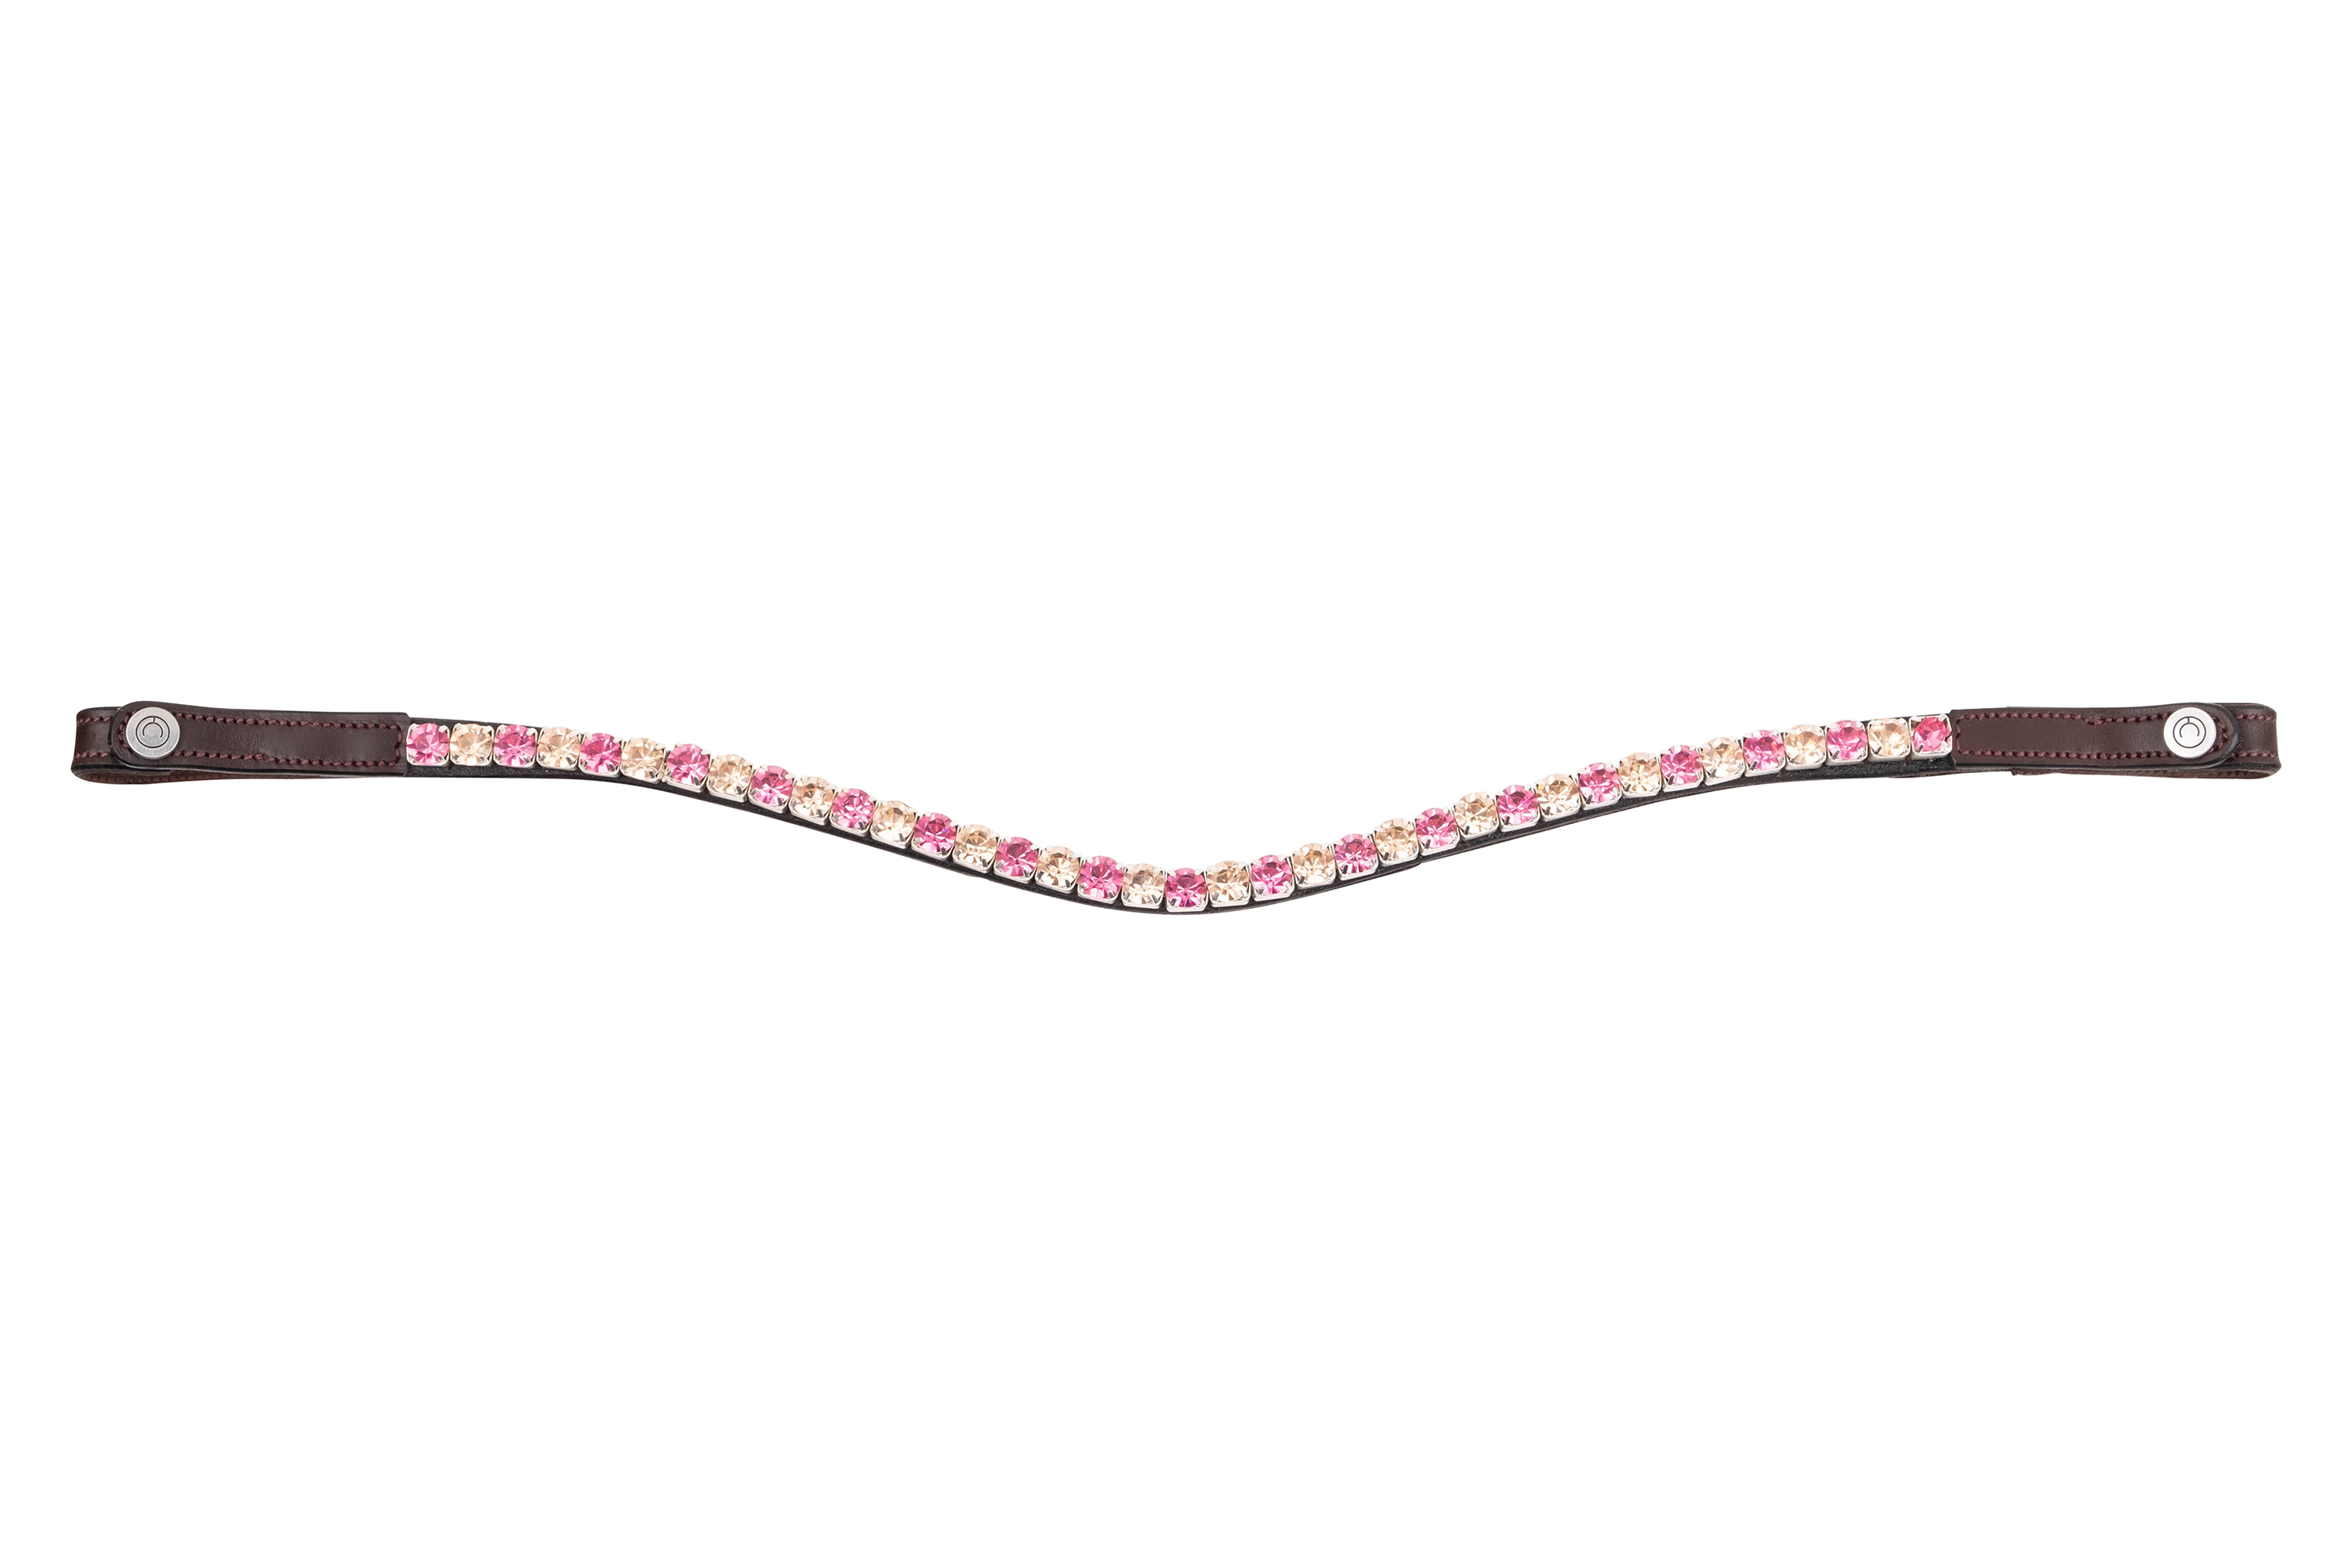 64224-8-Mighty-Browband-Peach-Pink.jpg